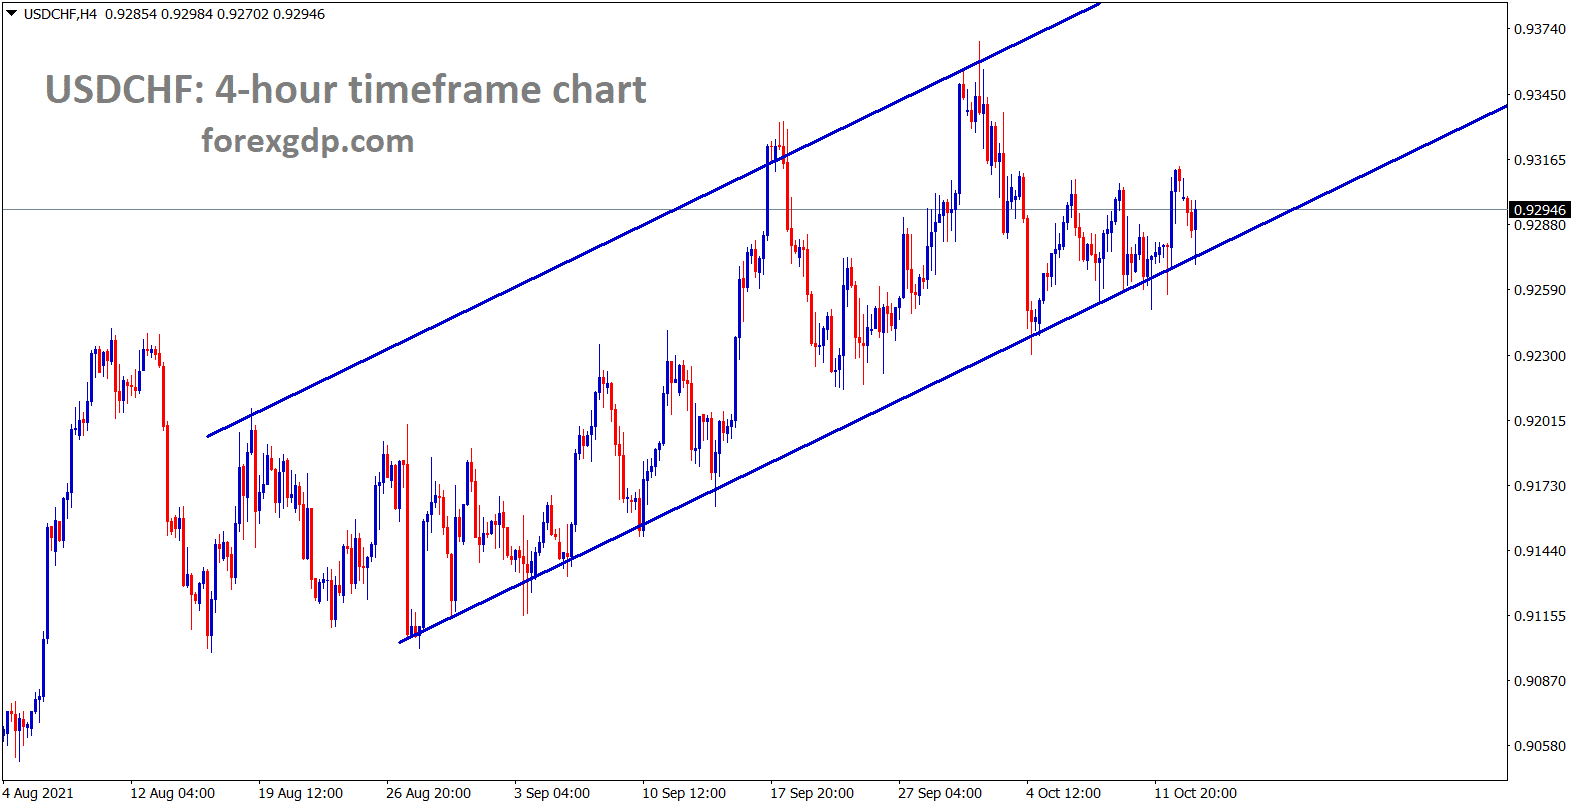 USDCHF is moving in an uptrend line respecting the higher lows